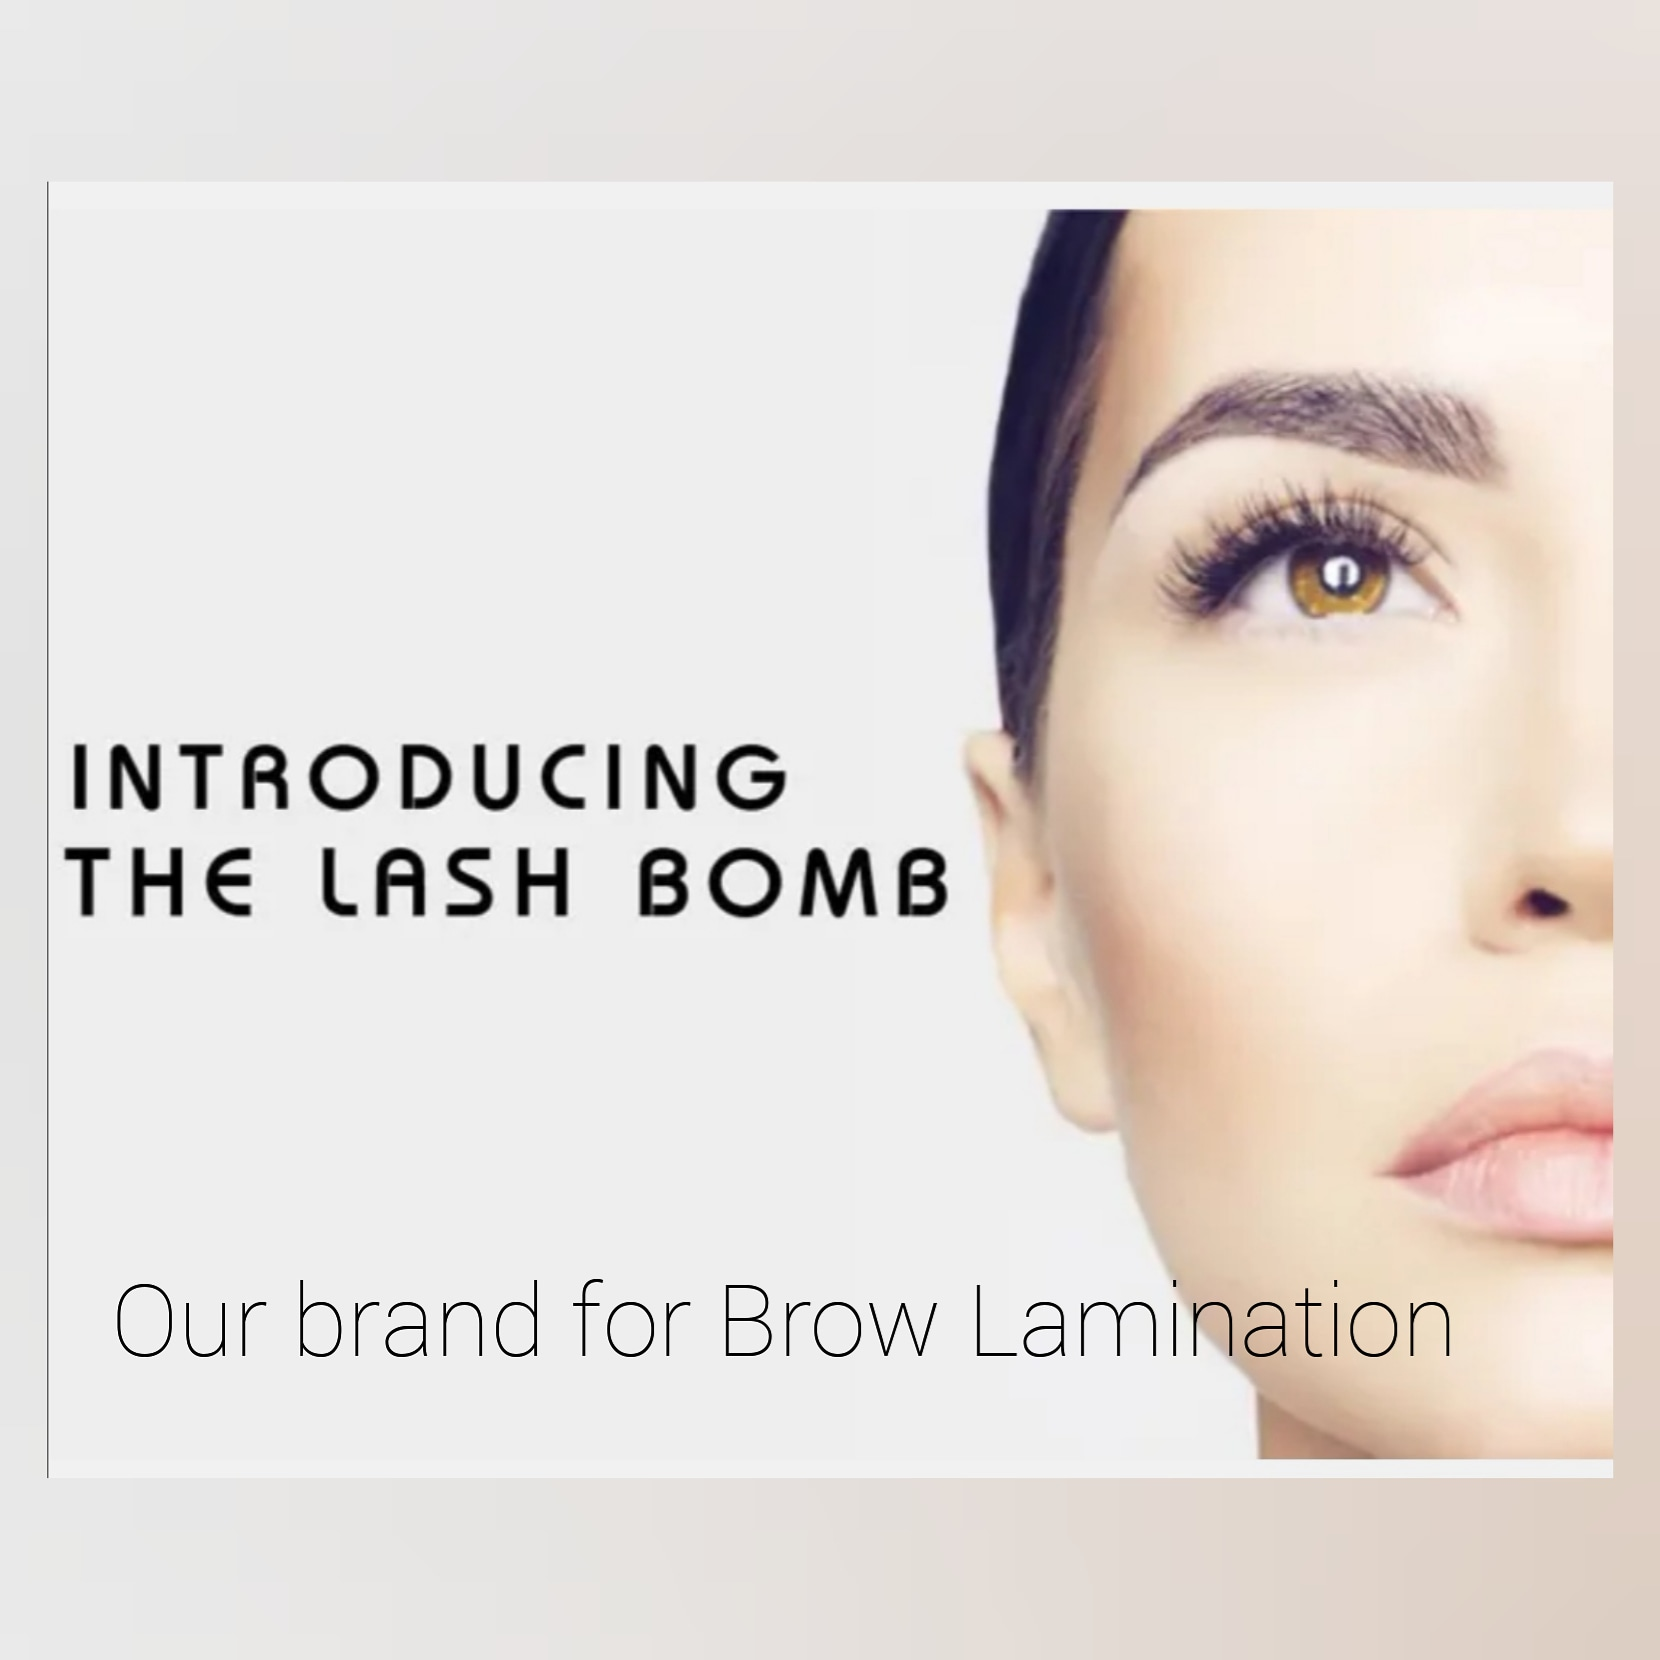 lashbomb website